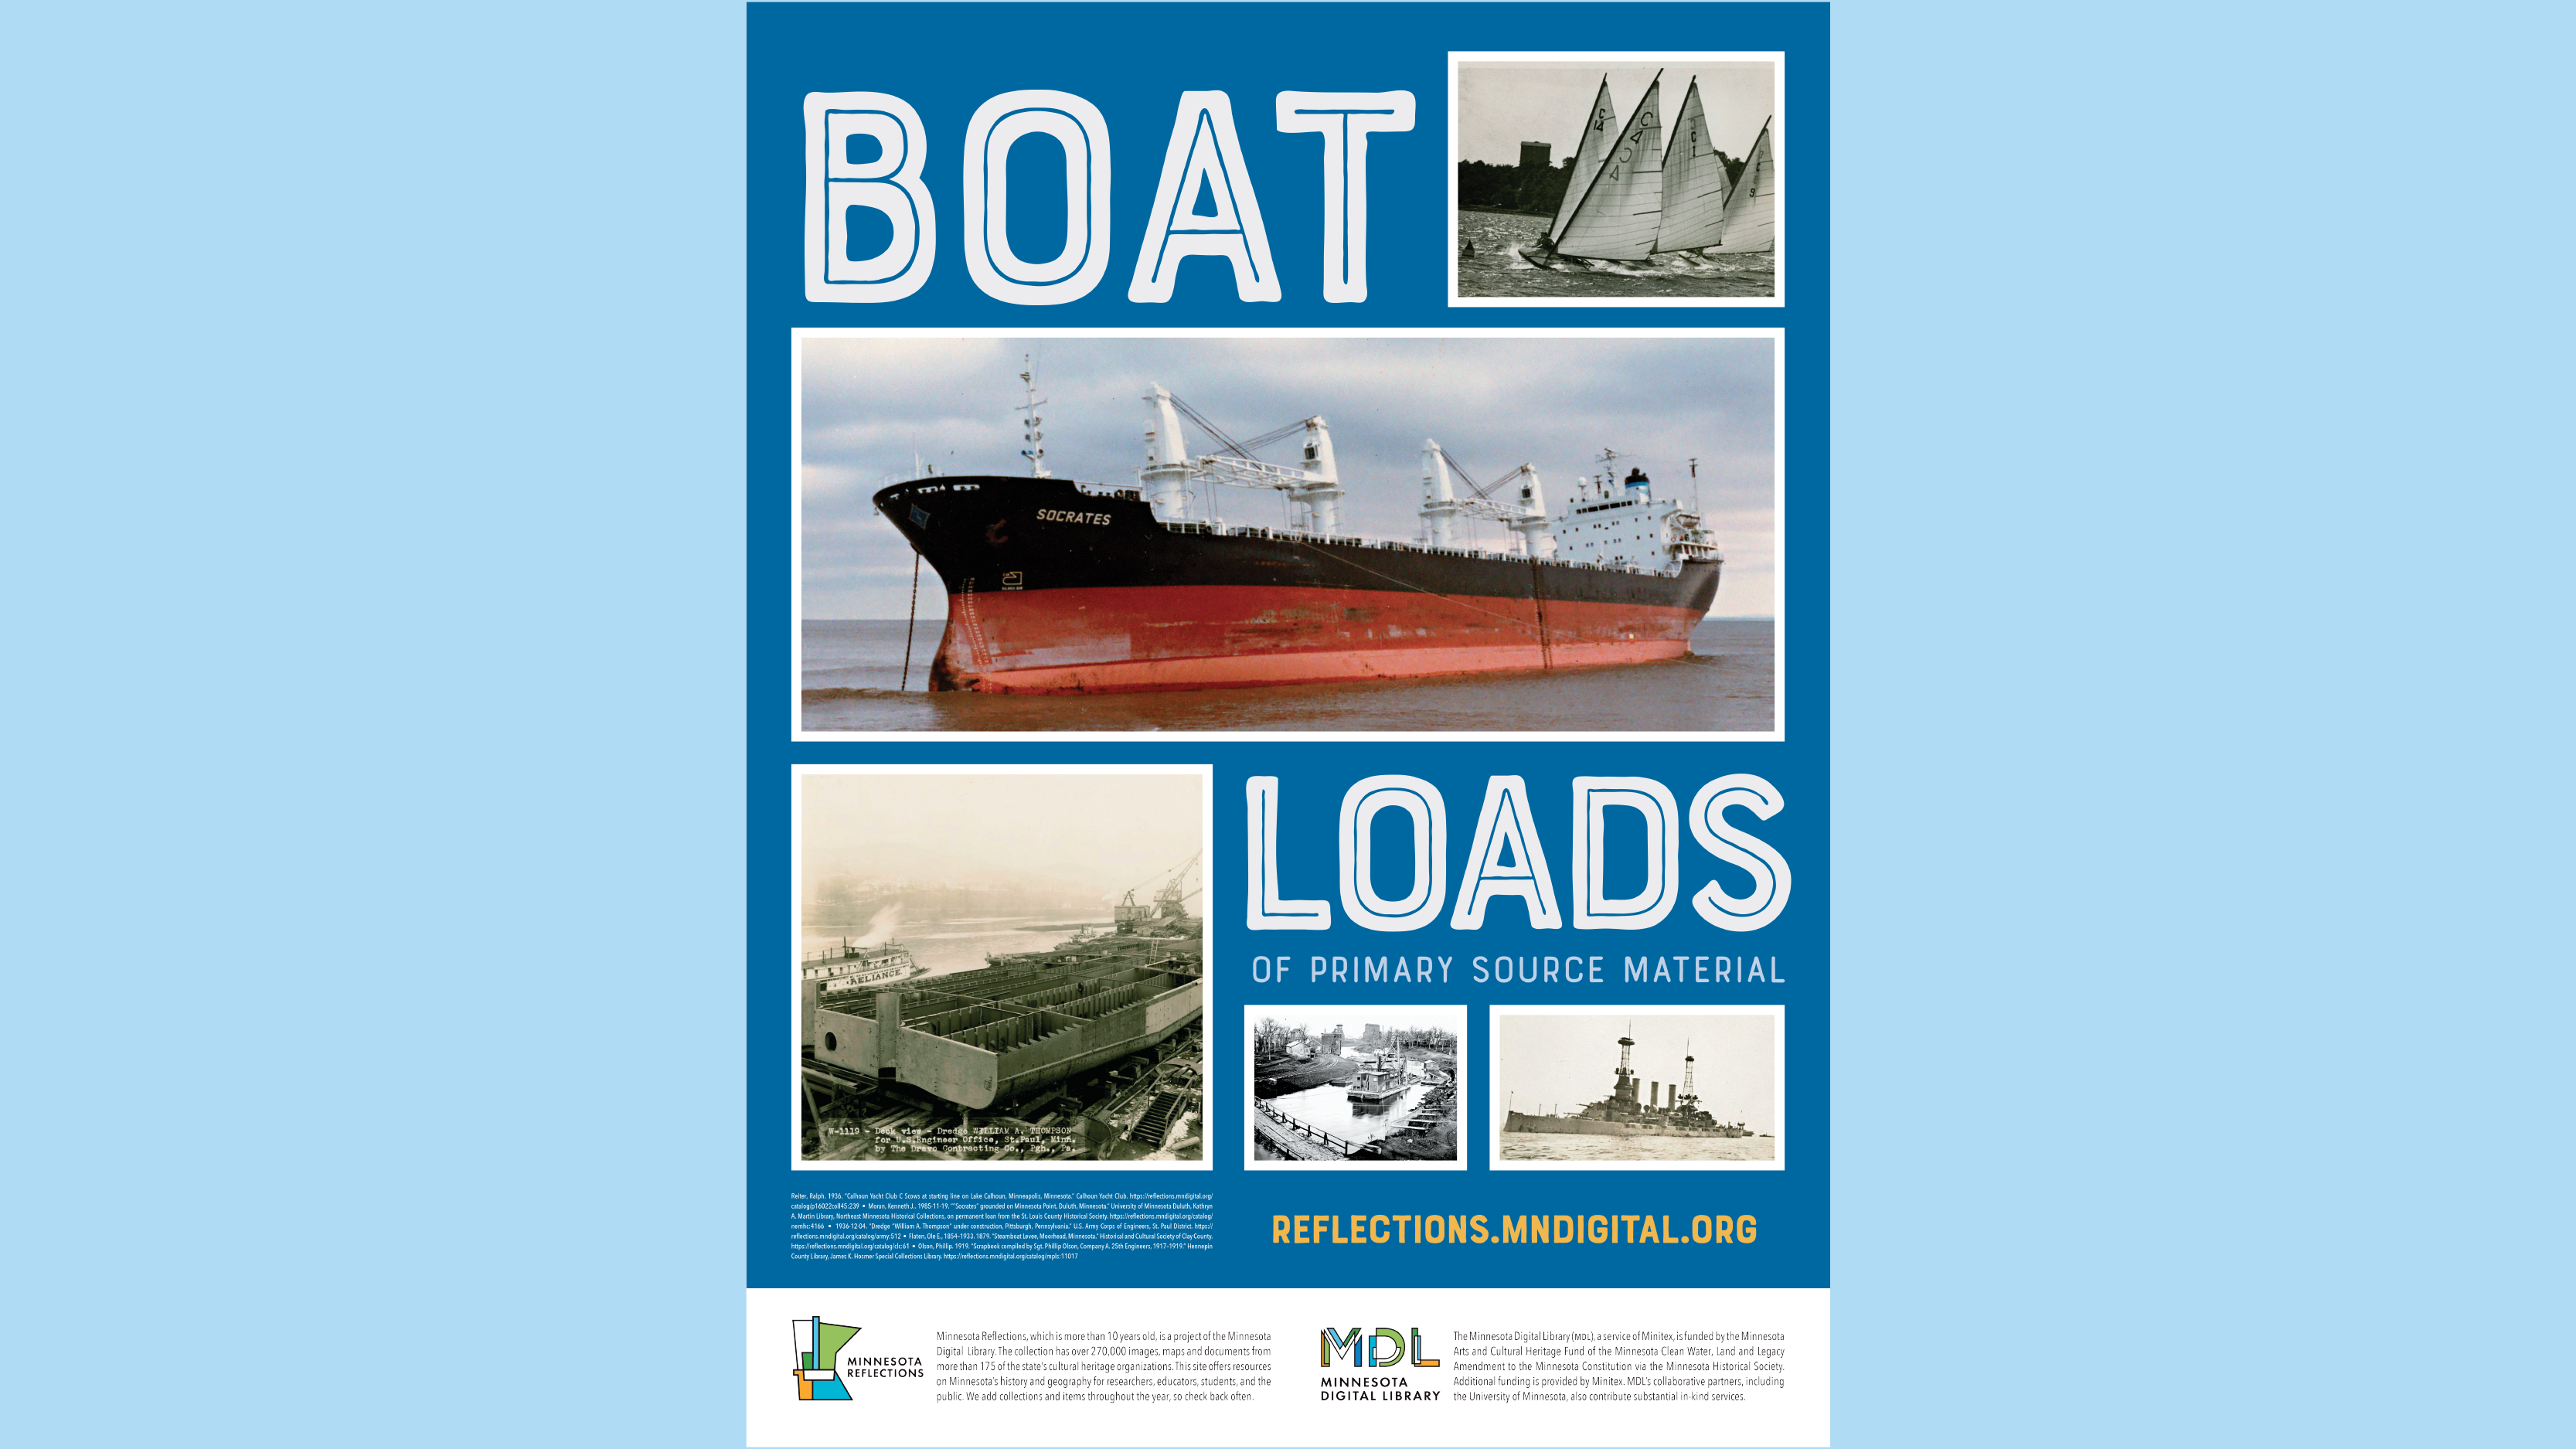 Minnesota Digital Library Poster – Boat Loads of Primary Source Material